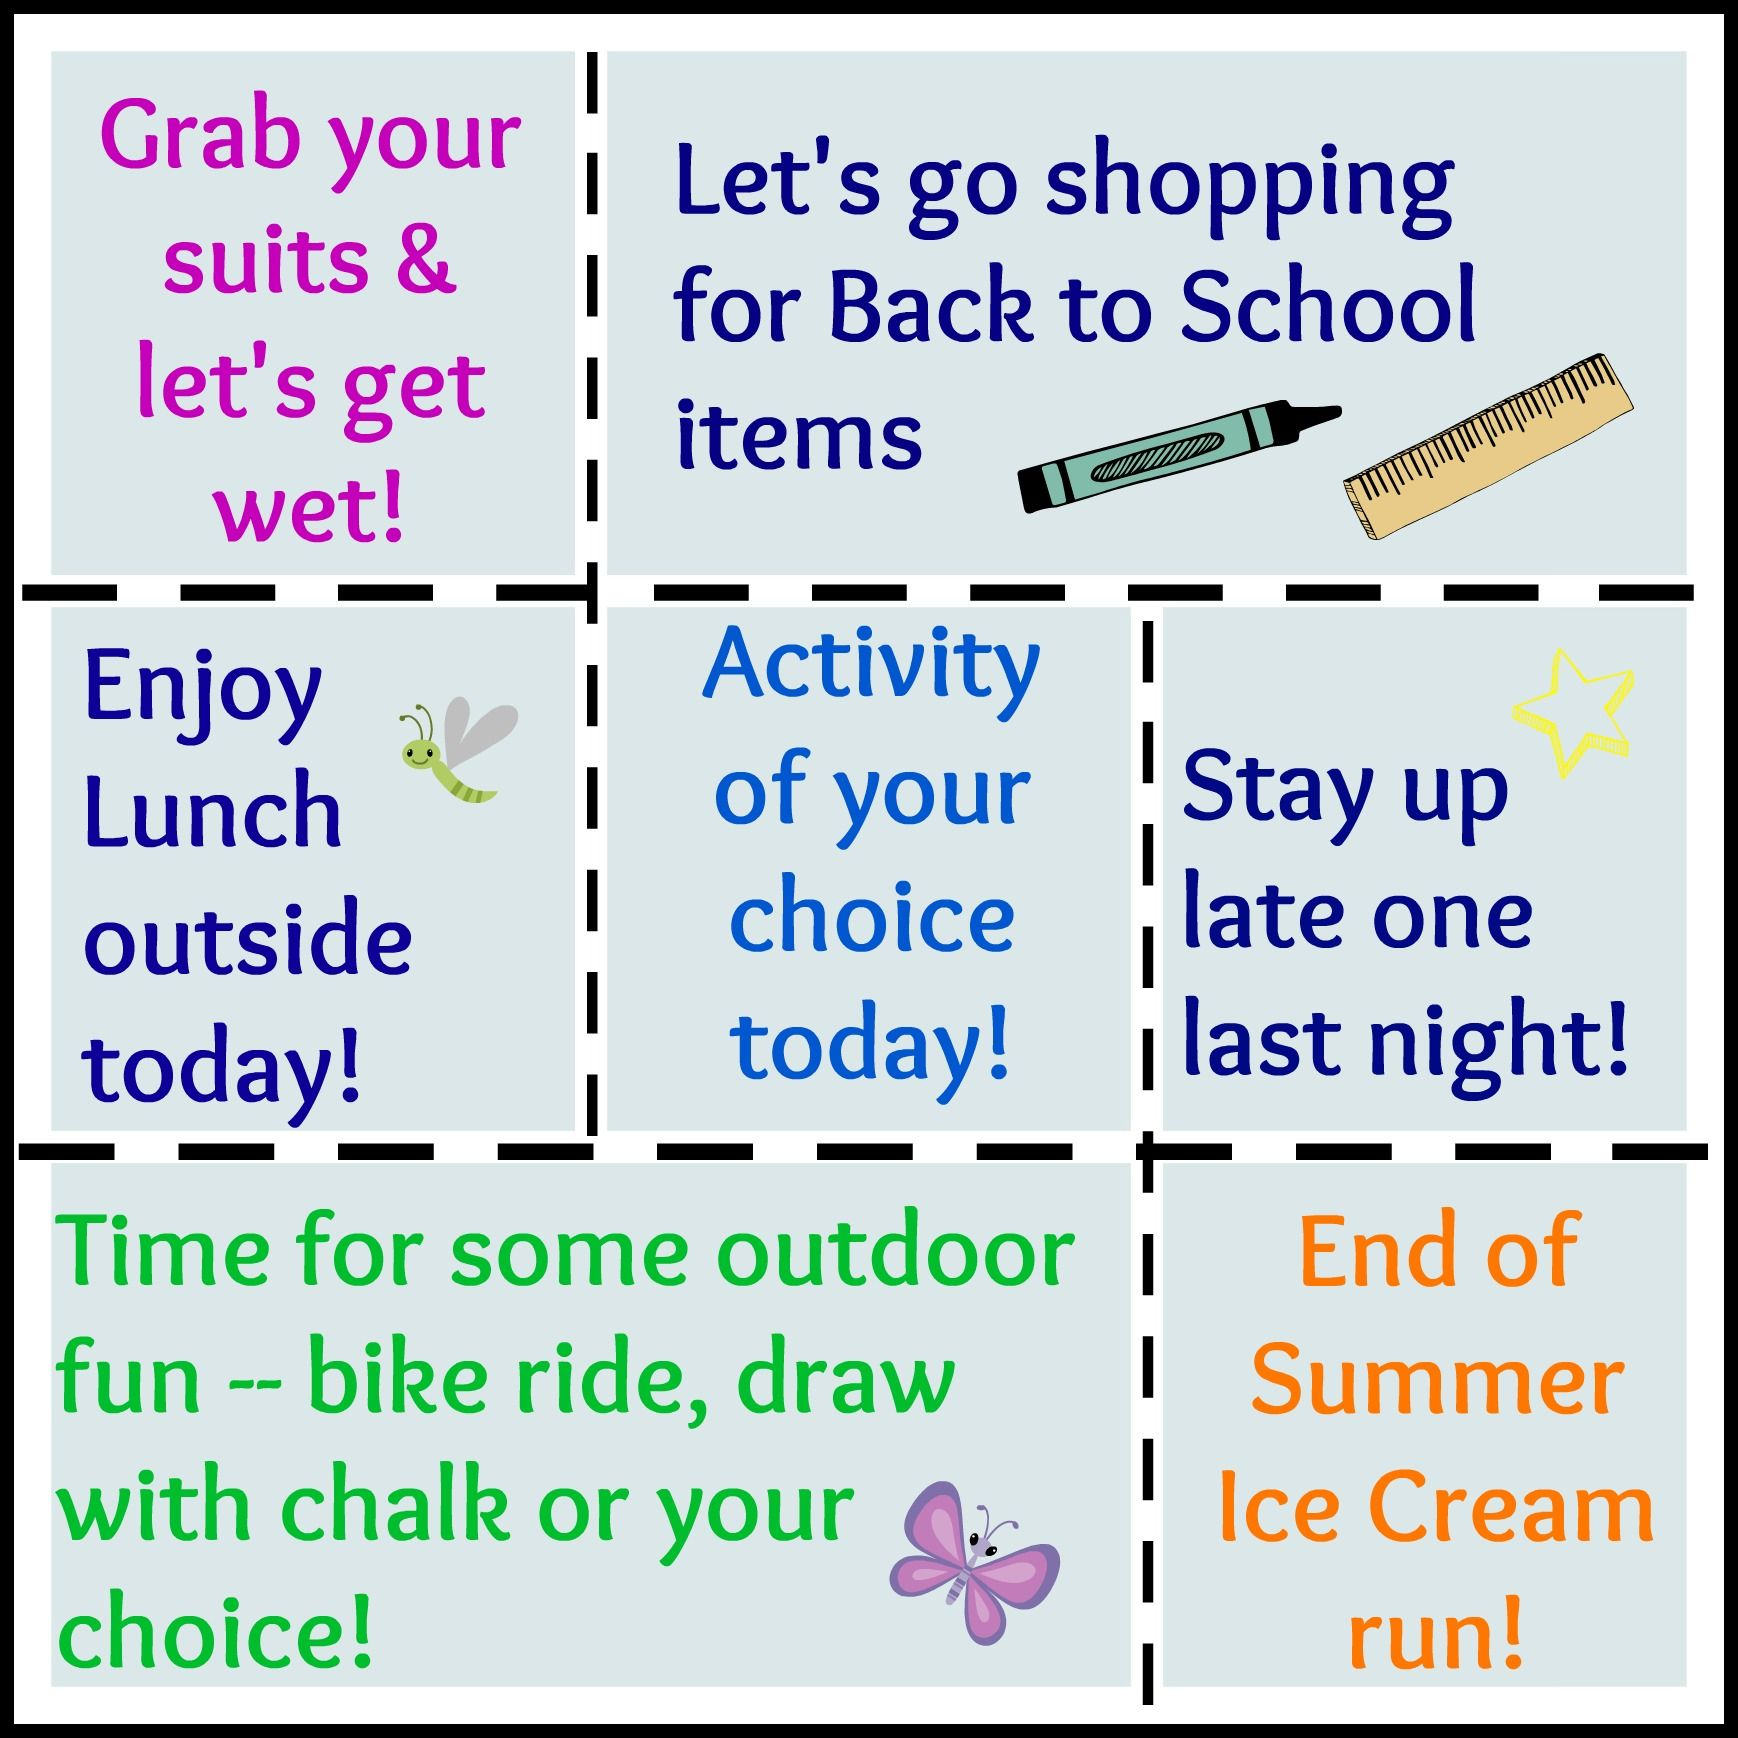 Free End Of Summer Fun Coupons For Kids A Great Way To Squeeze In Back To School Last Summer Activities For Kids Fun Summer Activities Summer Fun For Kids